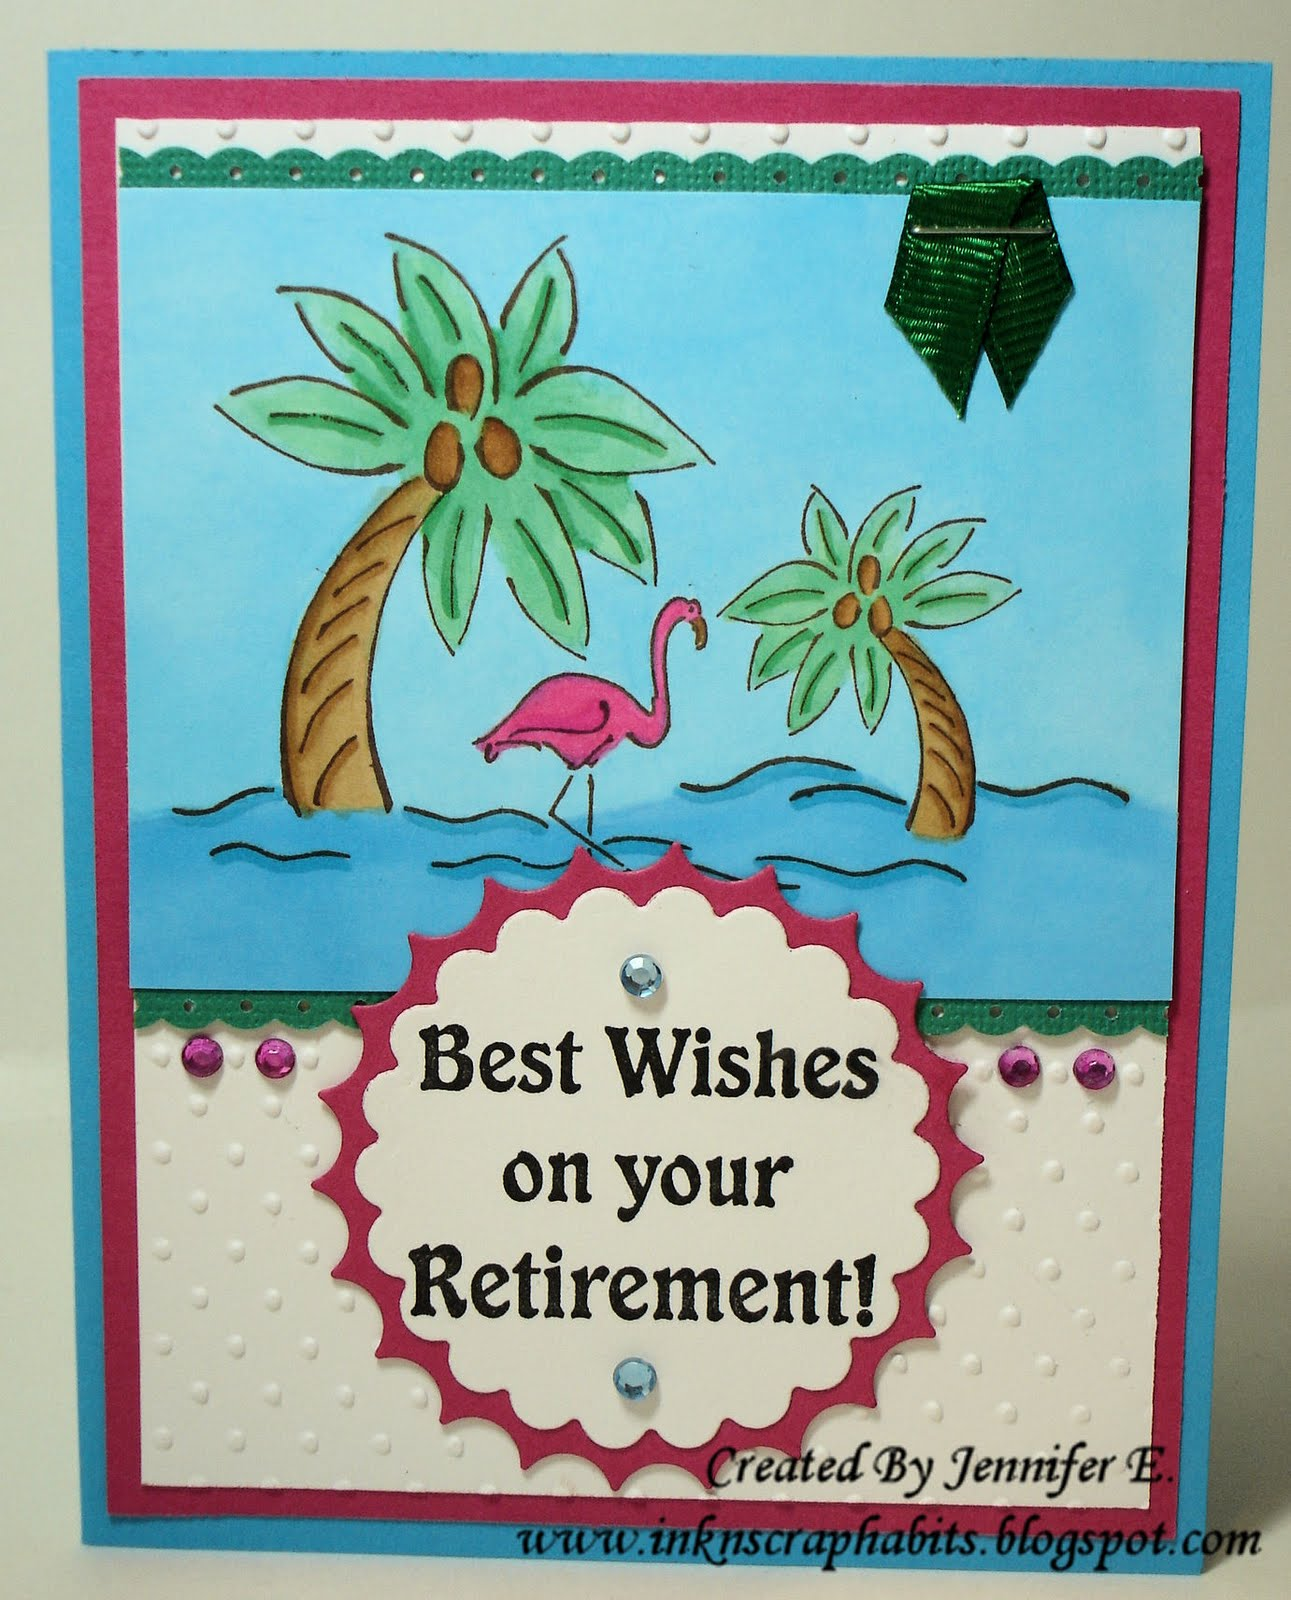 Quote For Retirement Wishes: Best 25 Retirement Quotes Ideas On Pinterest Happy